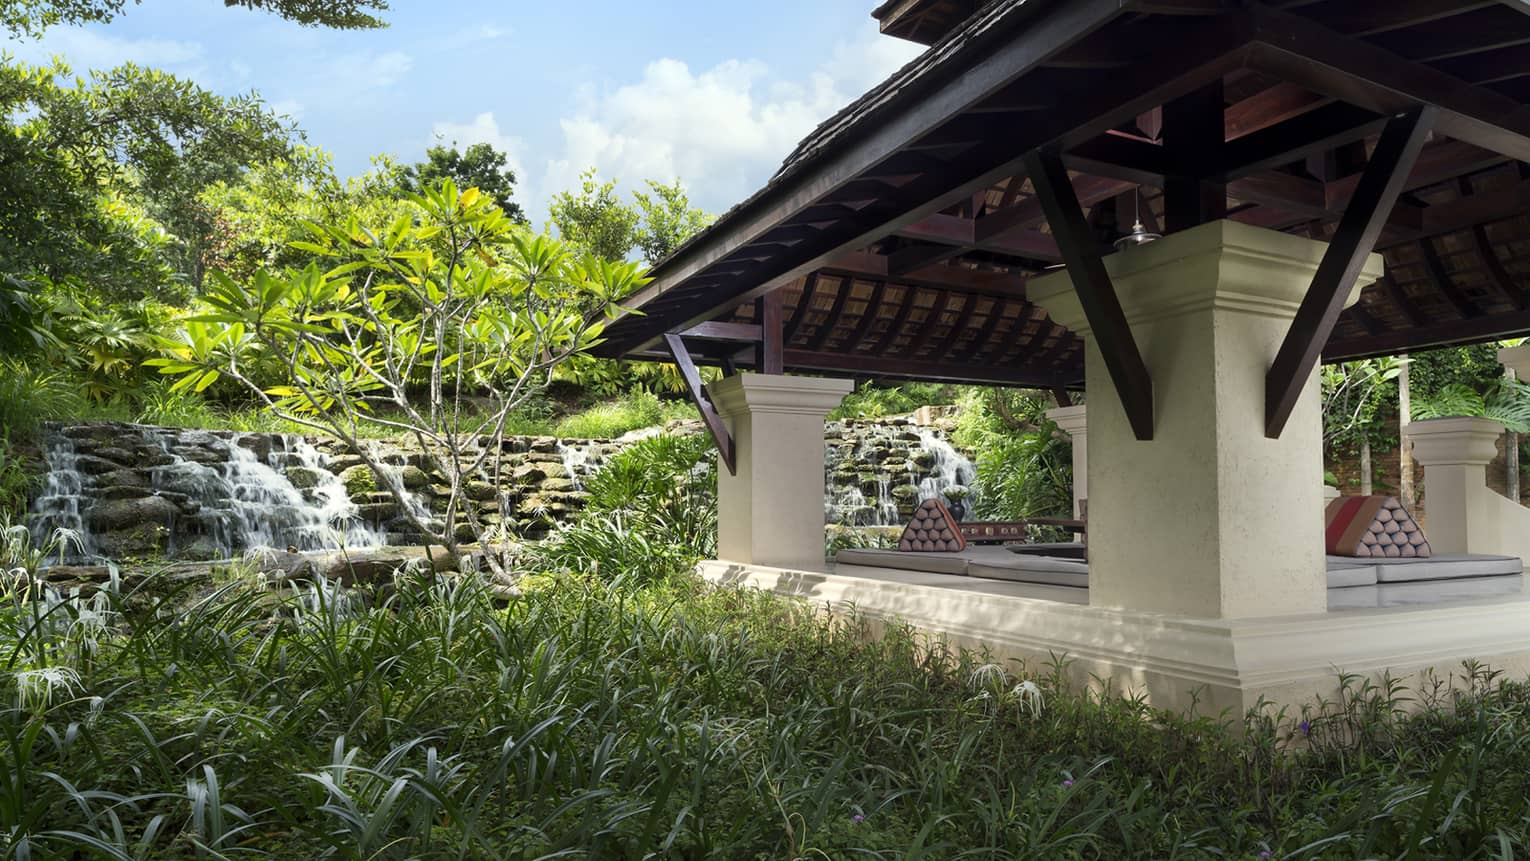 Large pavilion by stone waterfall, tropical gardens